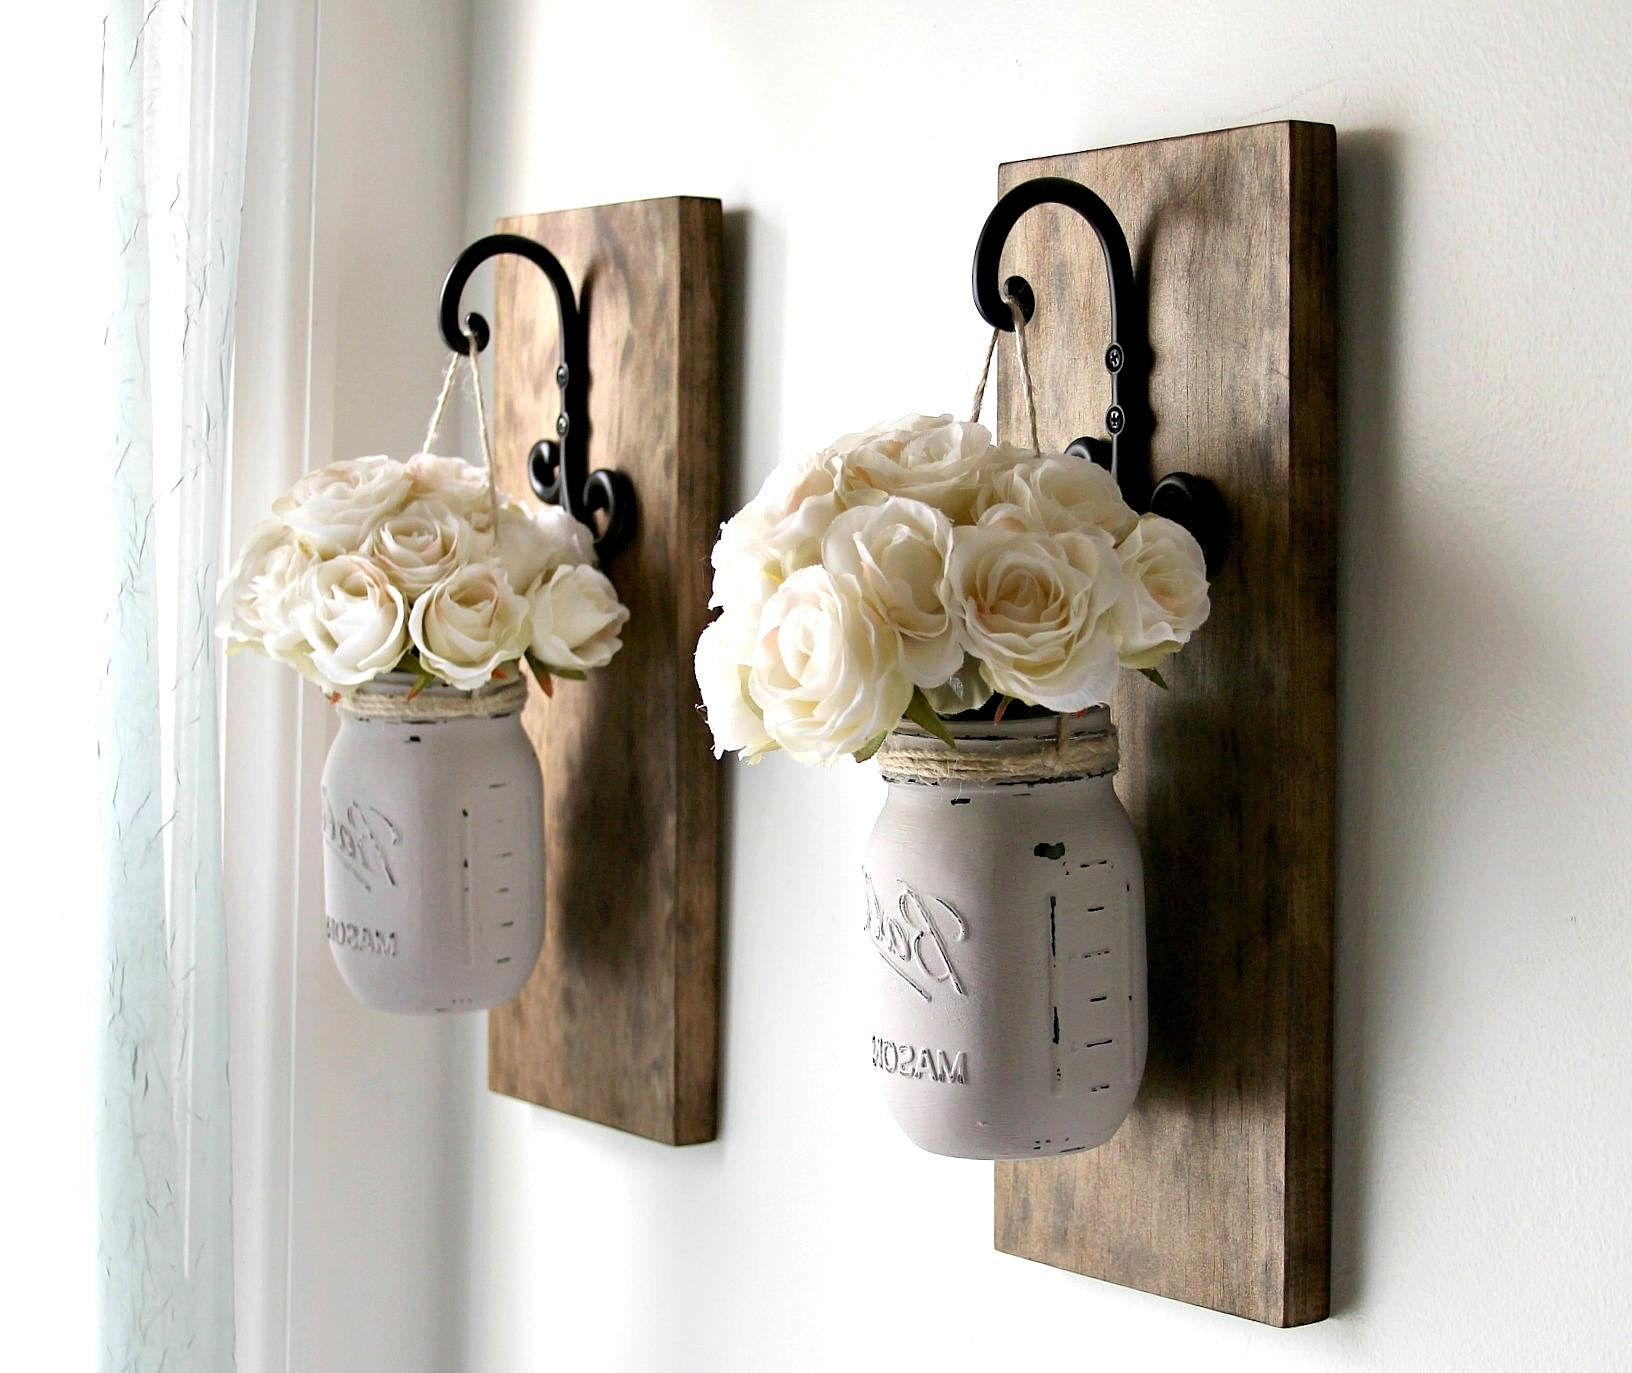 Rustic Sconces Rustic Wall Decor Mason Jars Sconce Farmhouse (View 16 of 20)